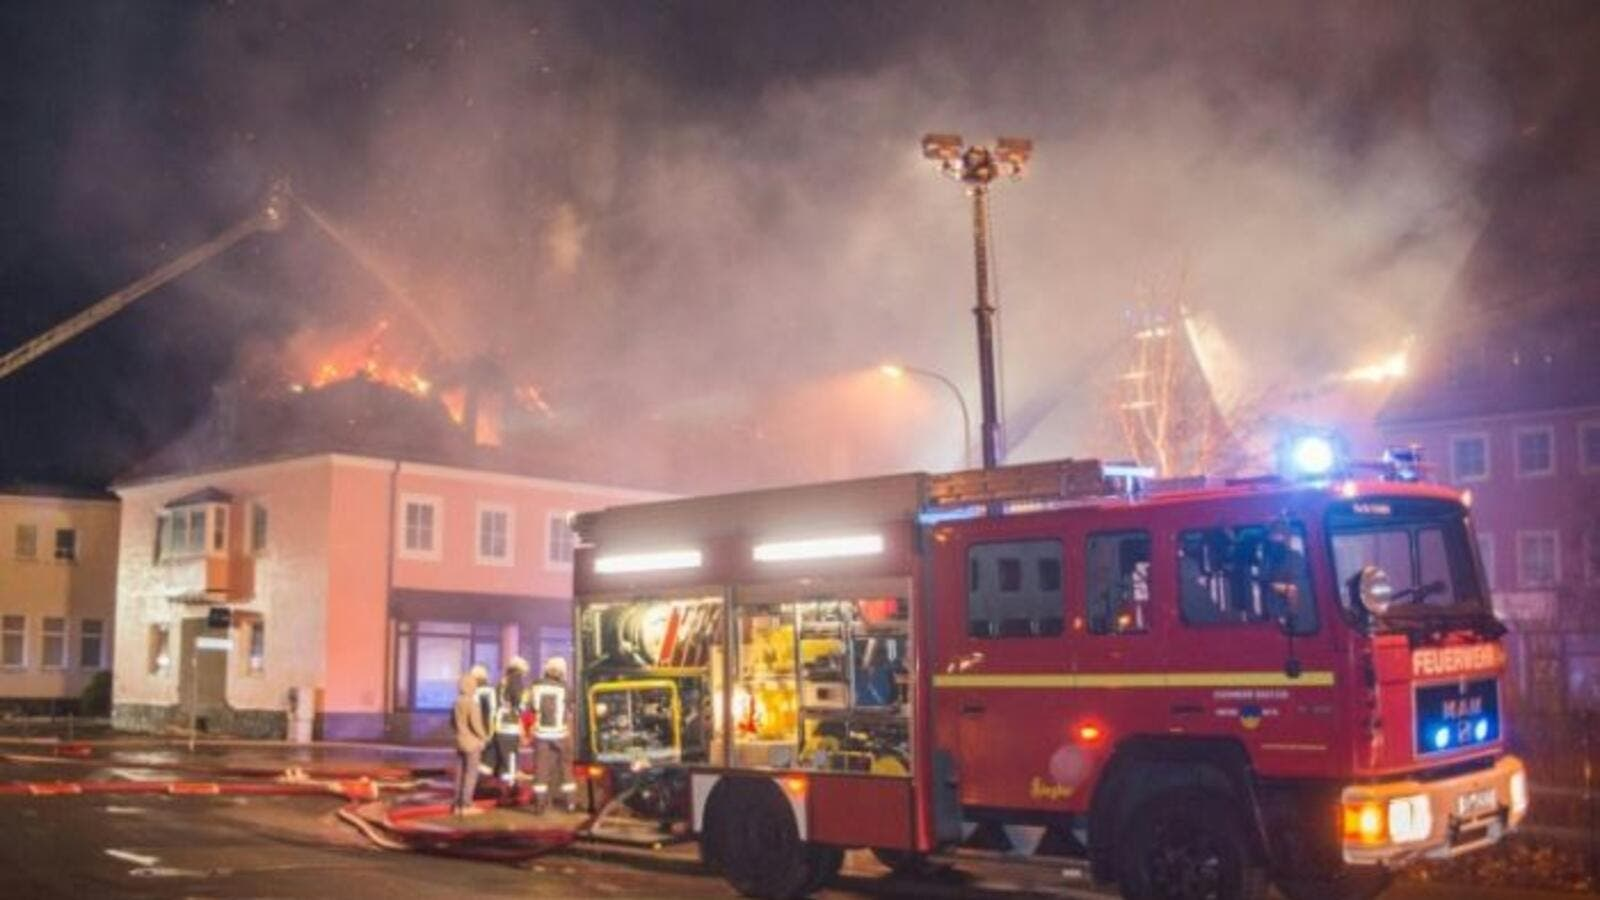 Fire fighters try to extinguish a fire at a former hotel that was under reconstruction to become a home for asylum seekers on February 21, 2016 in Bautzen east of Dresden, eastern Germany. (AFP/Rico Loeb)